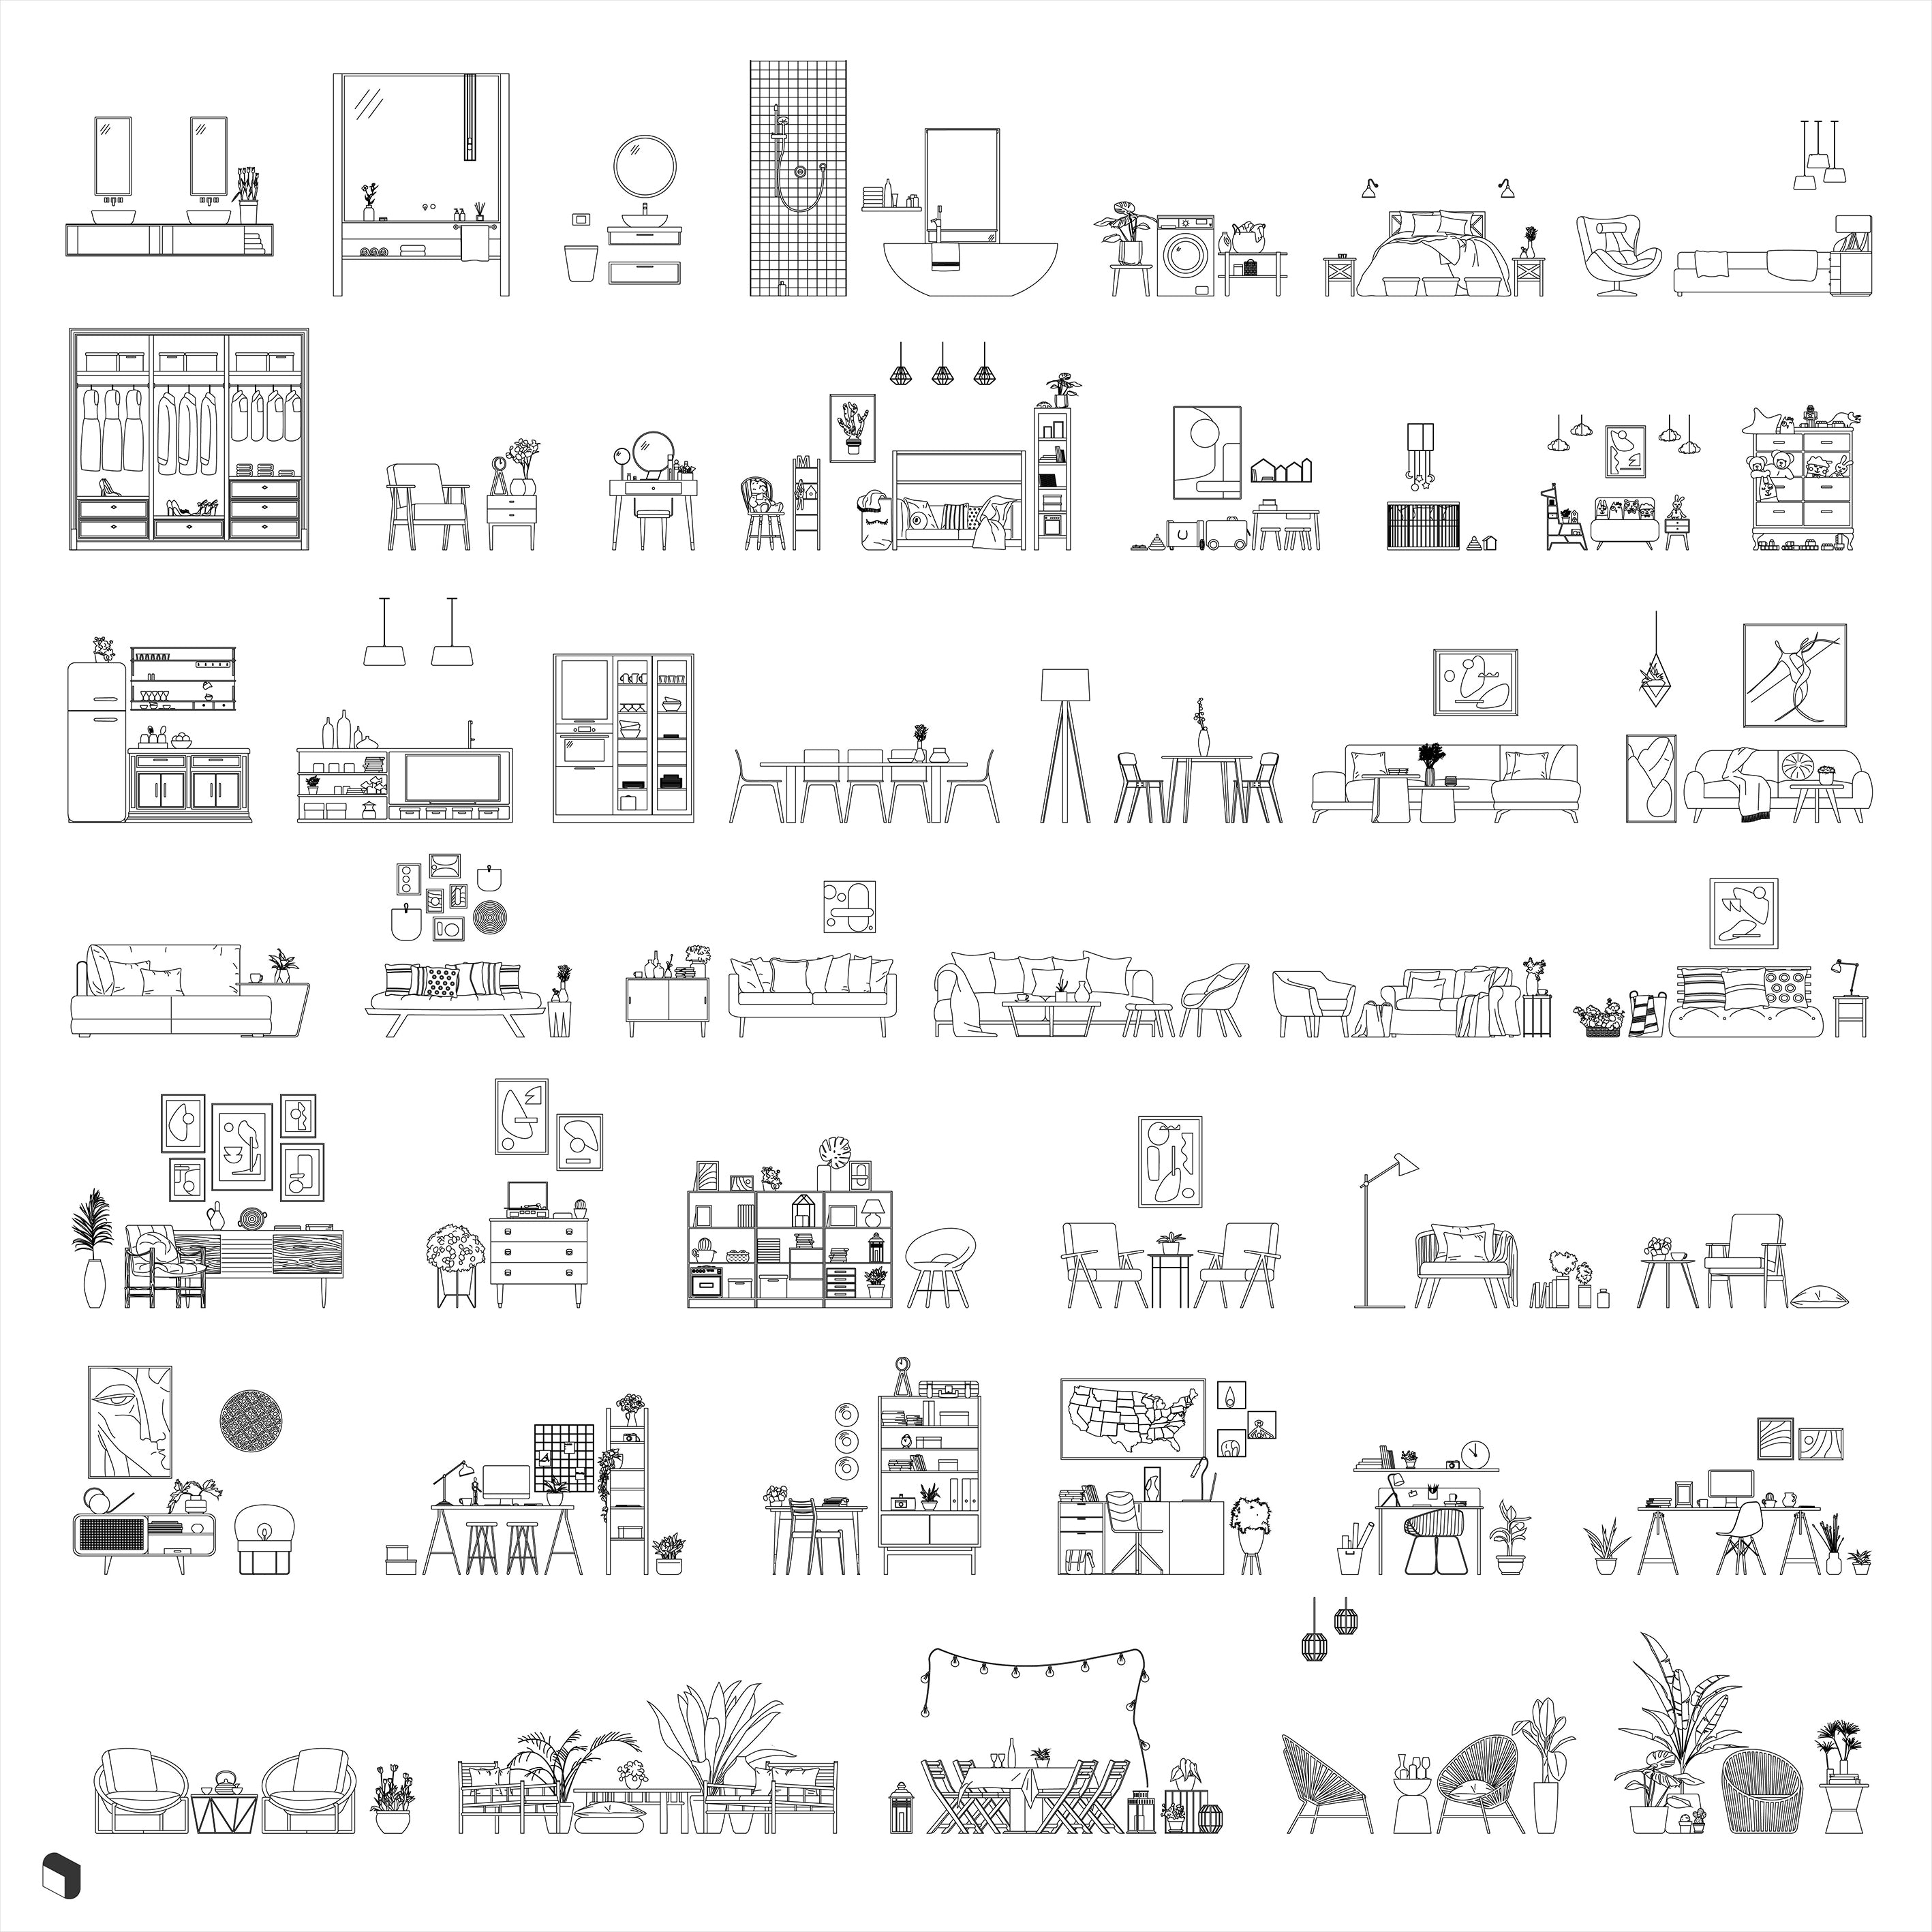 Cad Complete Interior Furniture Set DWG | Toffu Co